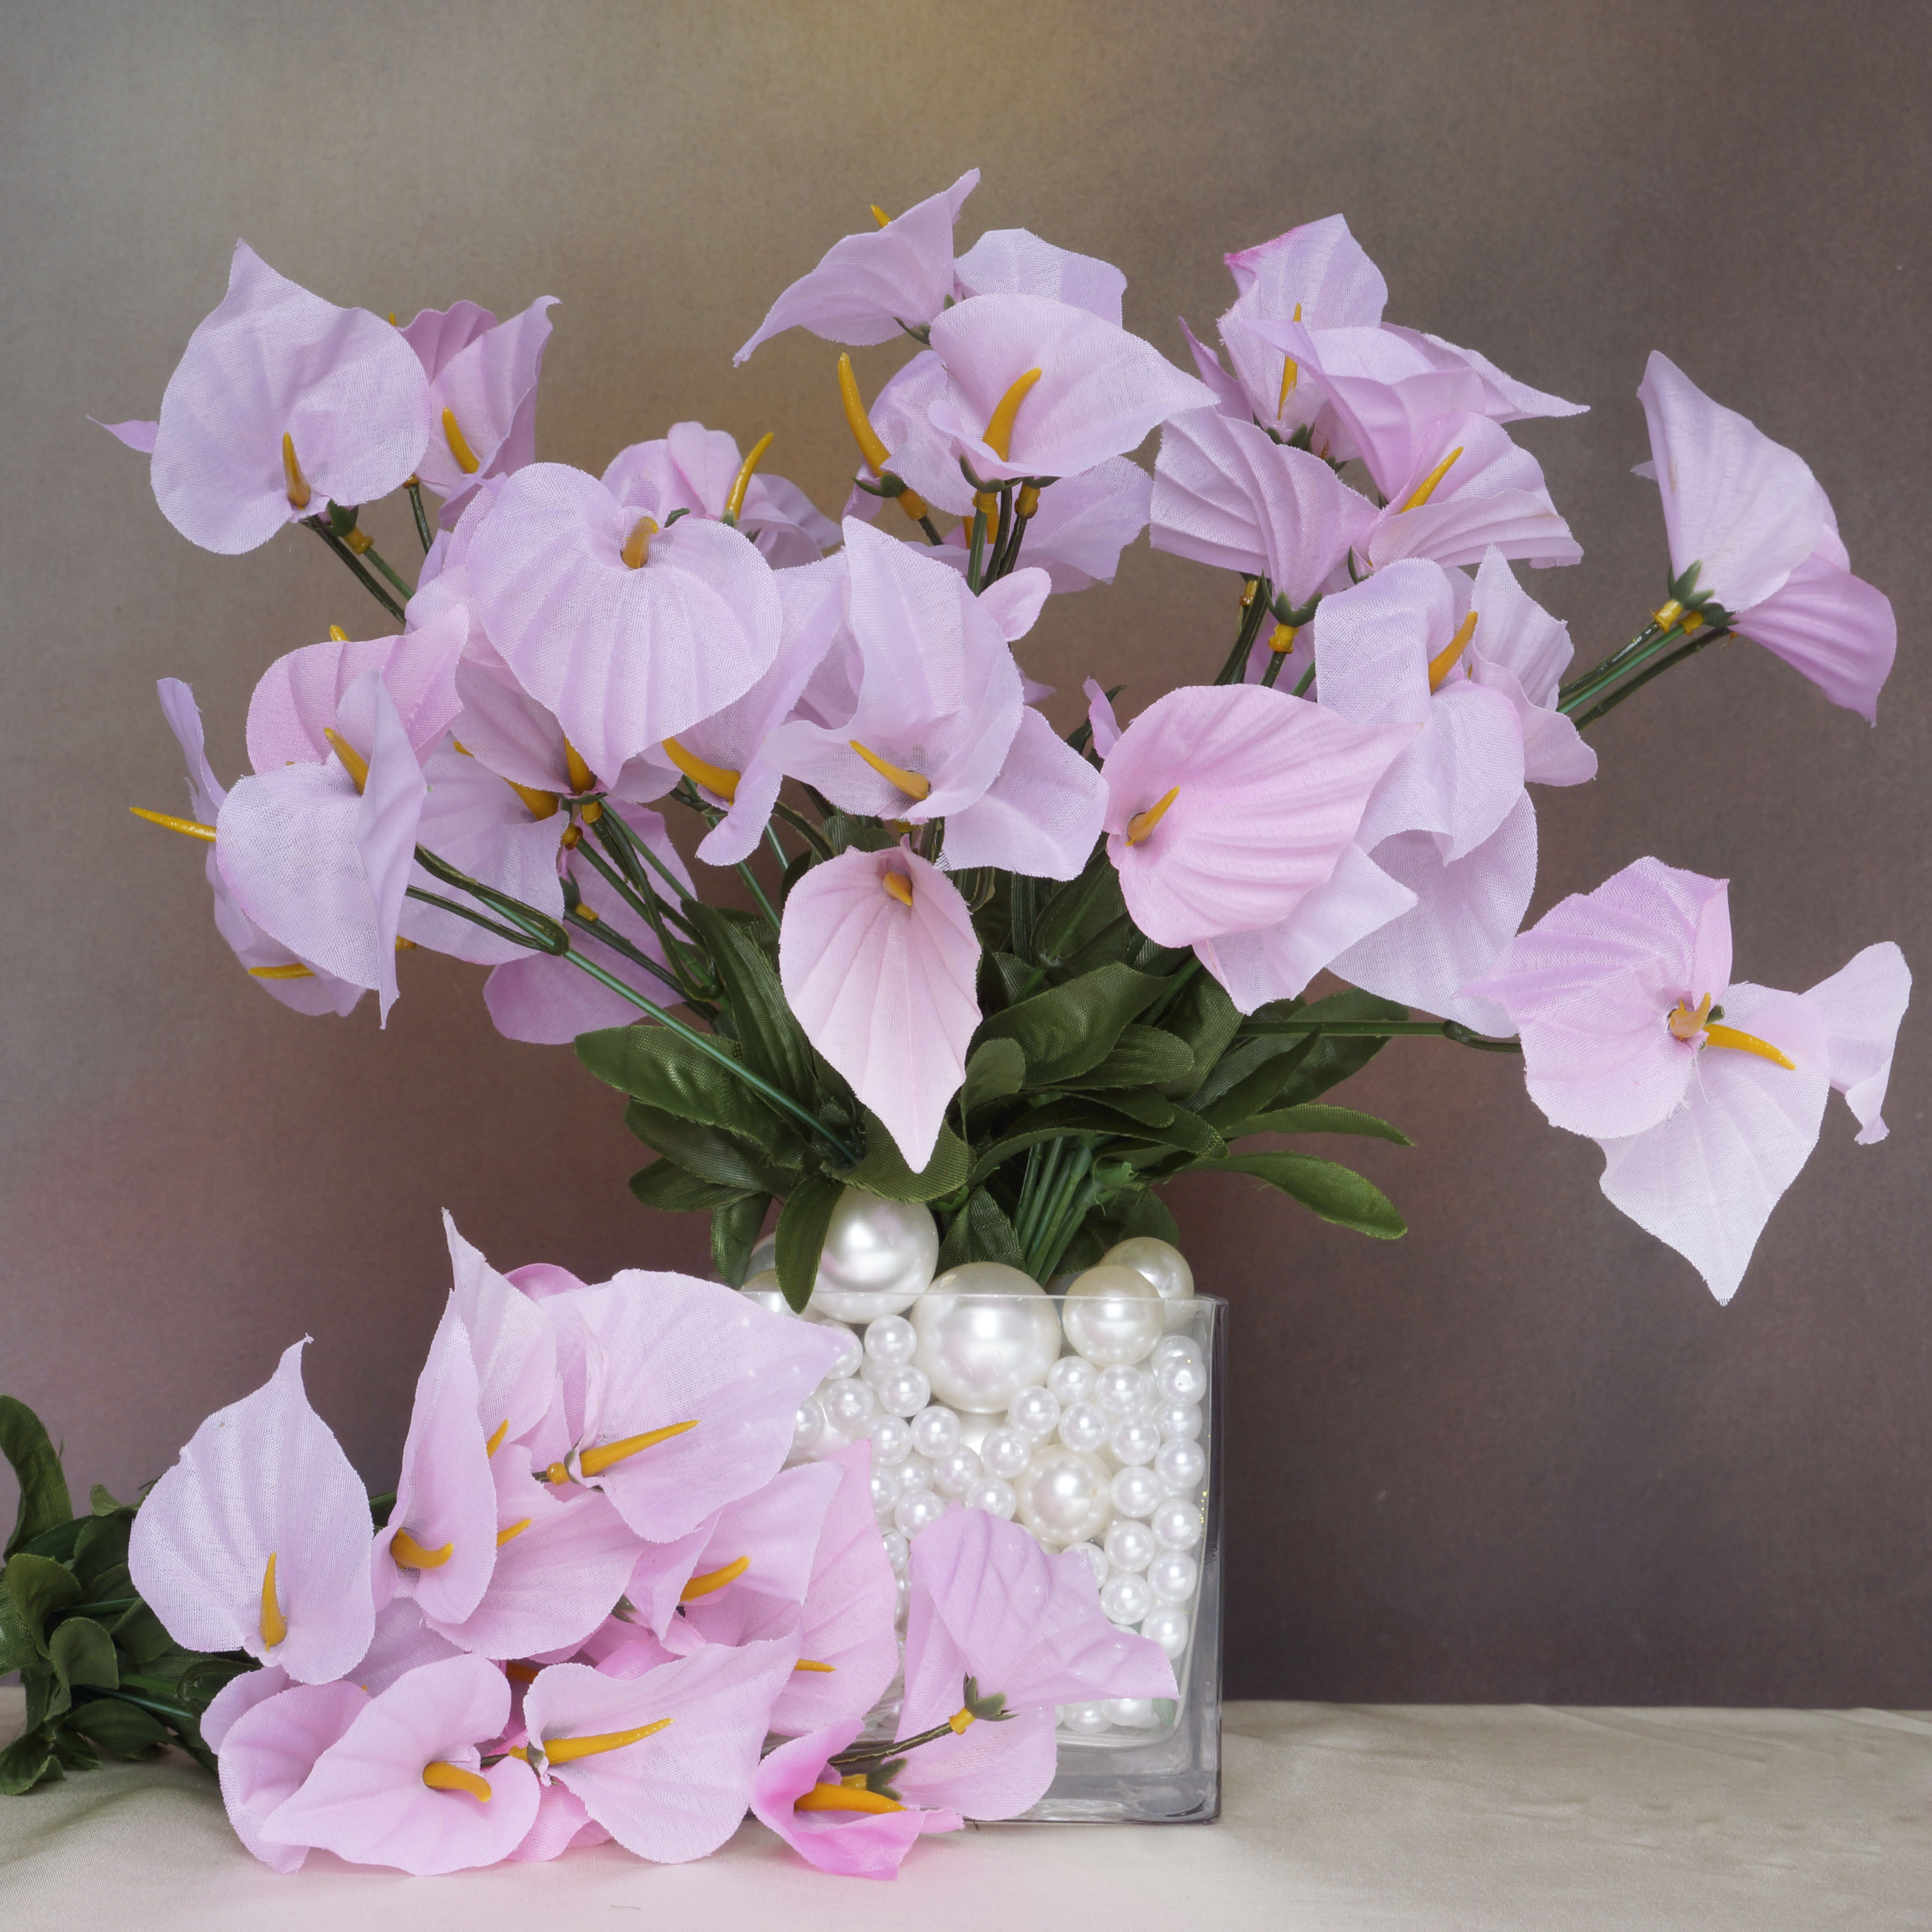 252 Mini Silk Calla Lilies Flowers Bushes For Wedding Bouquets